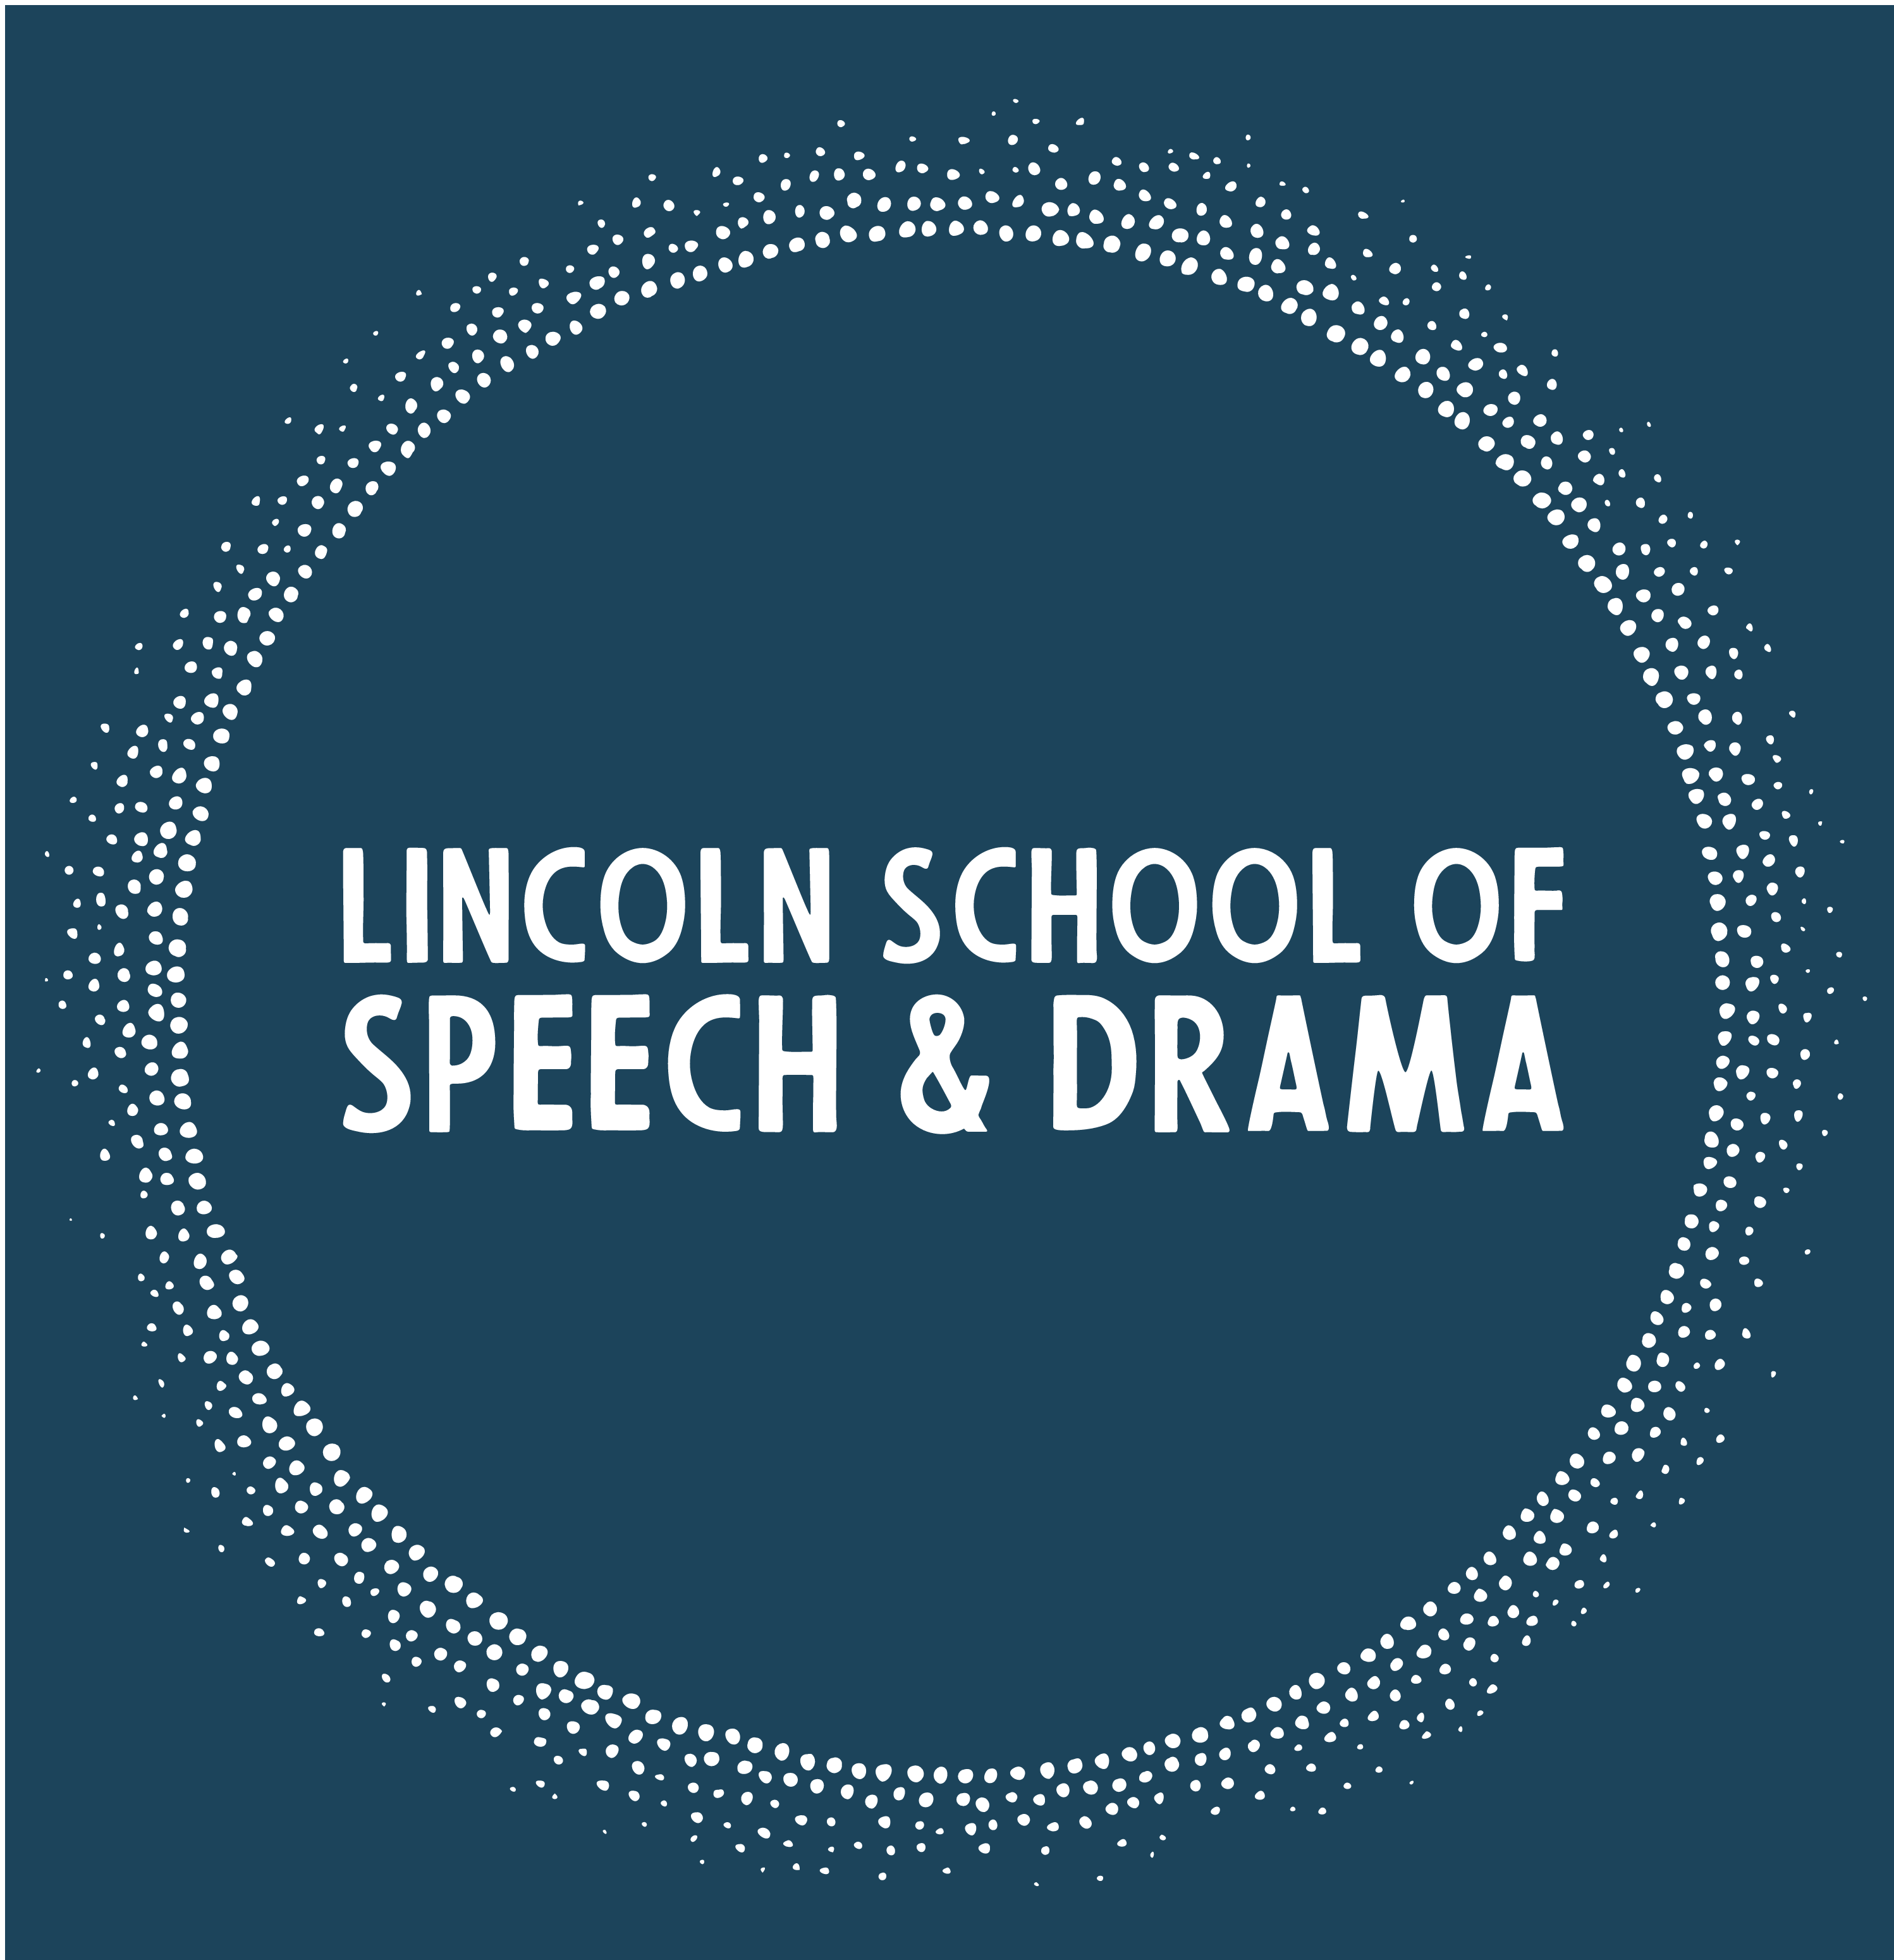 Lincoln School of Speech and Drama